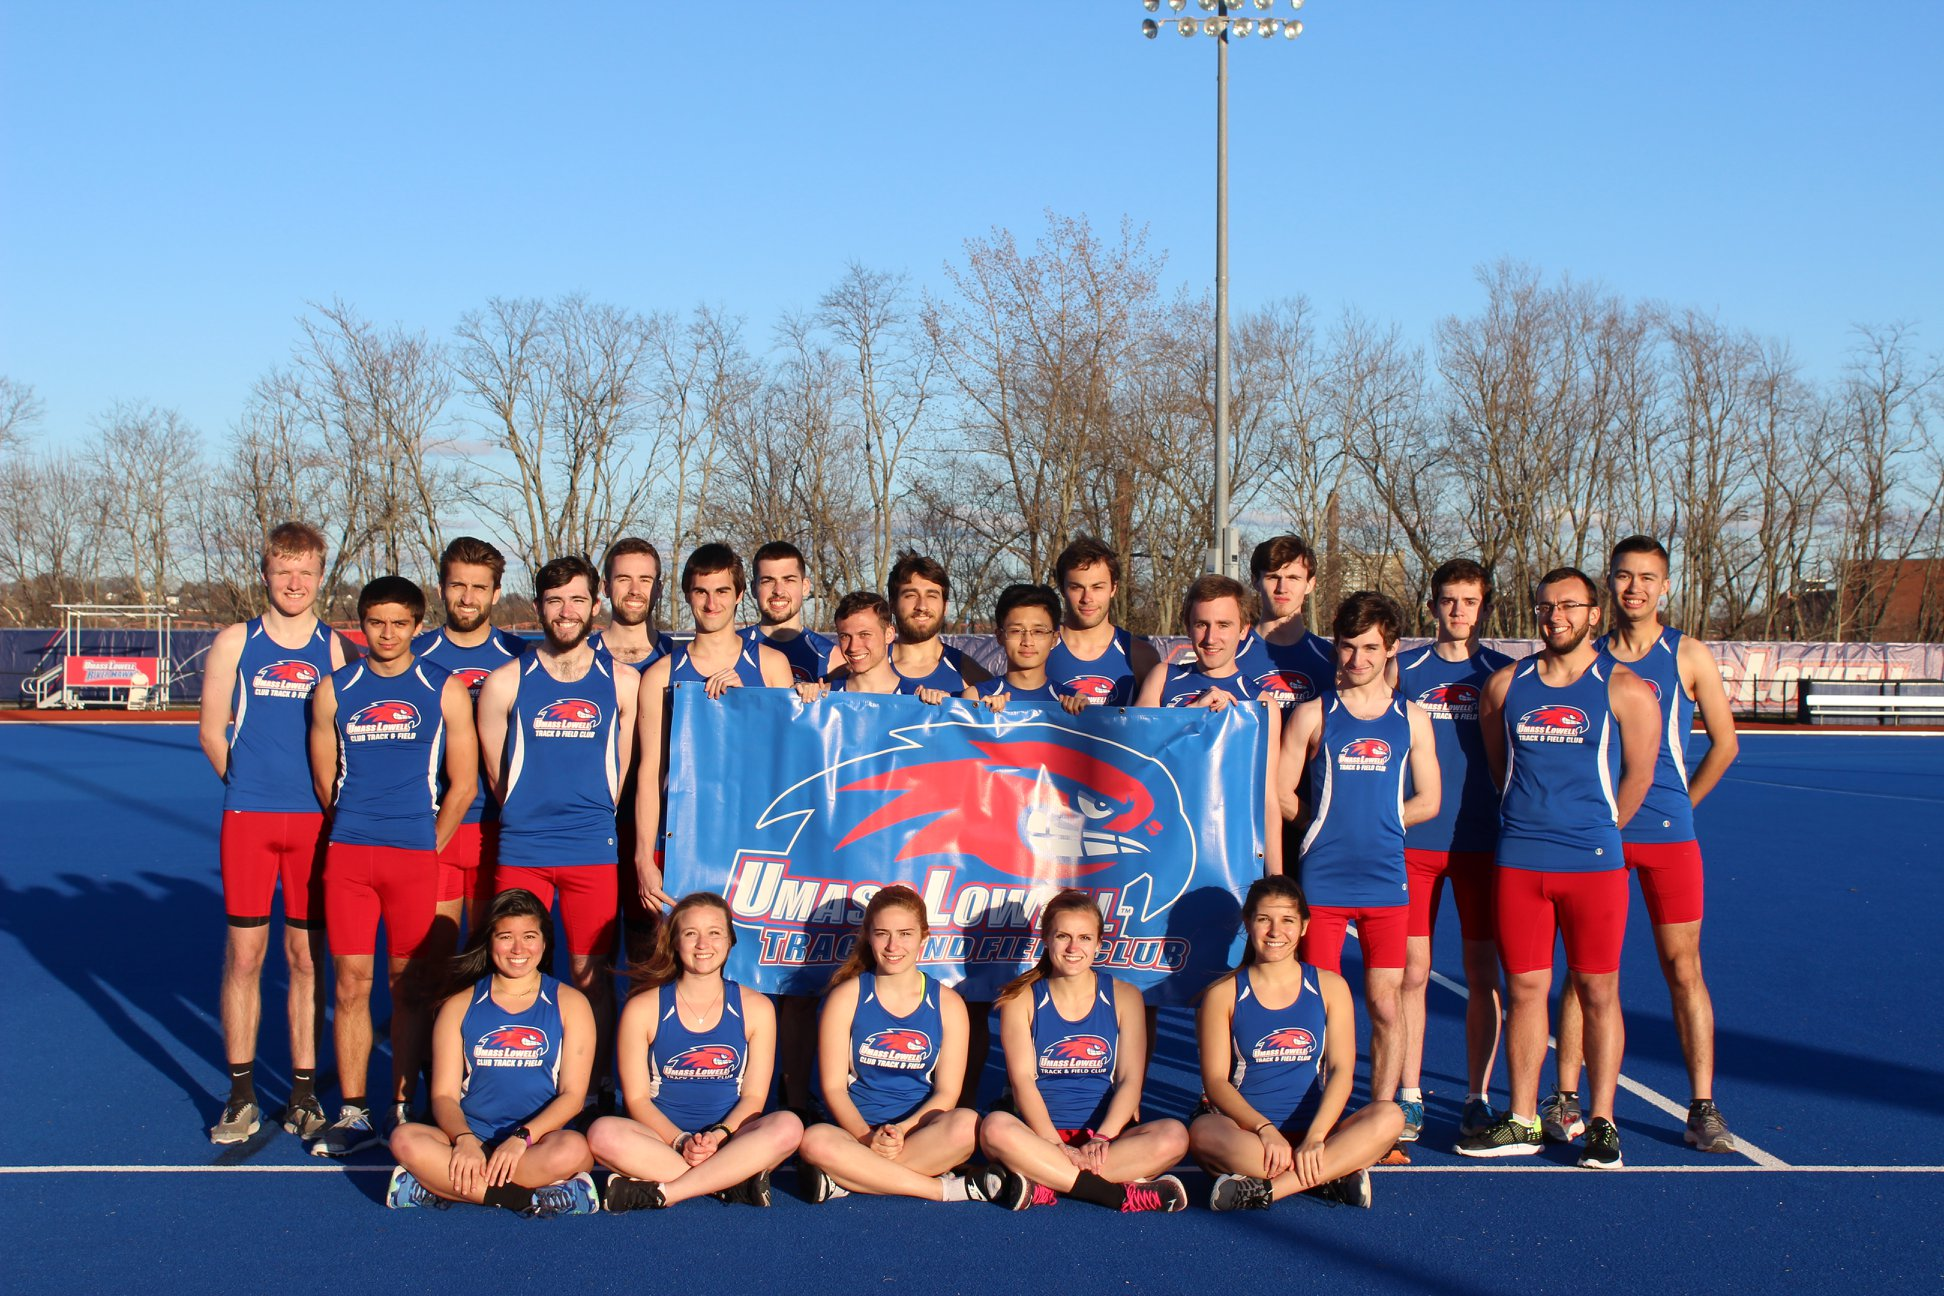 Team photo of UMass Lowell Club Track & Field